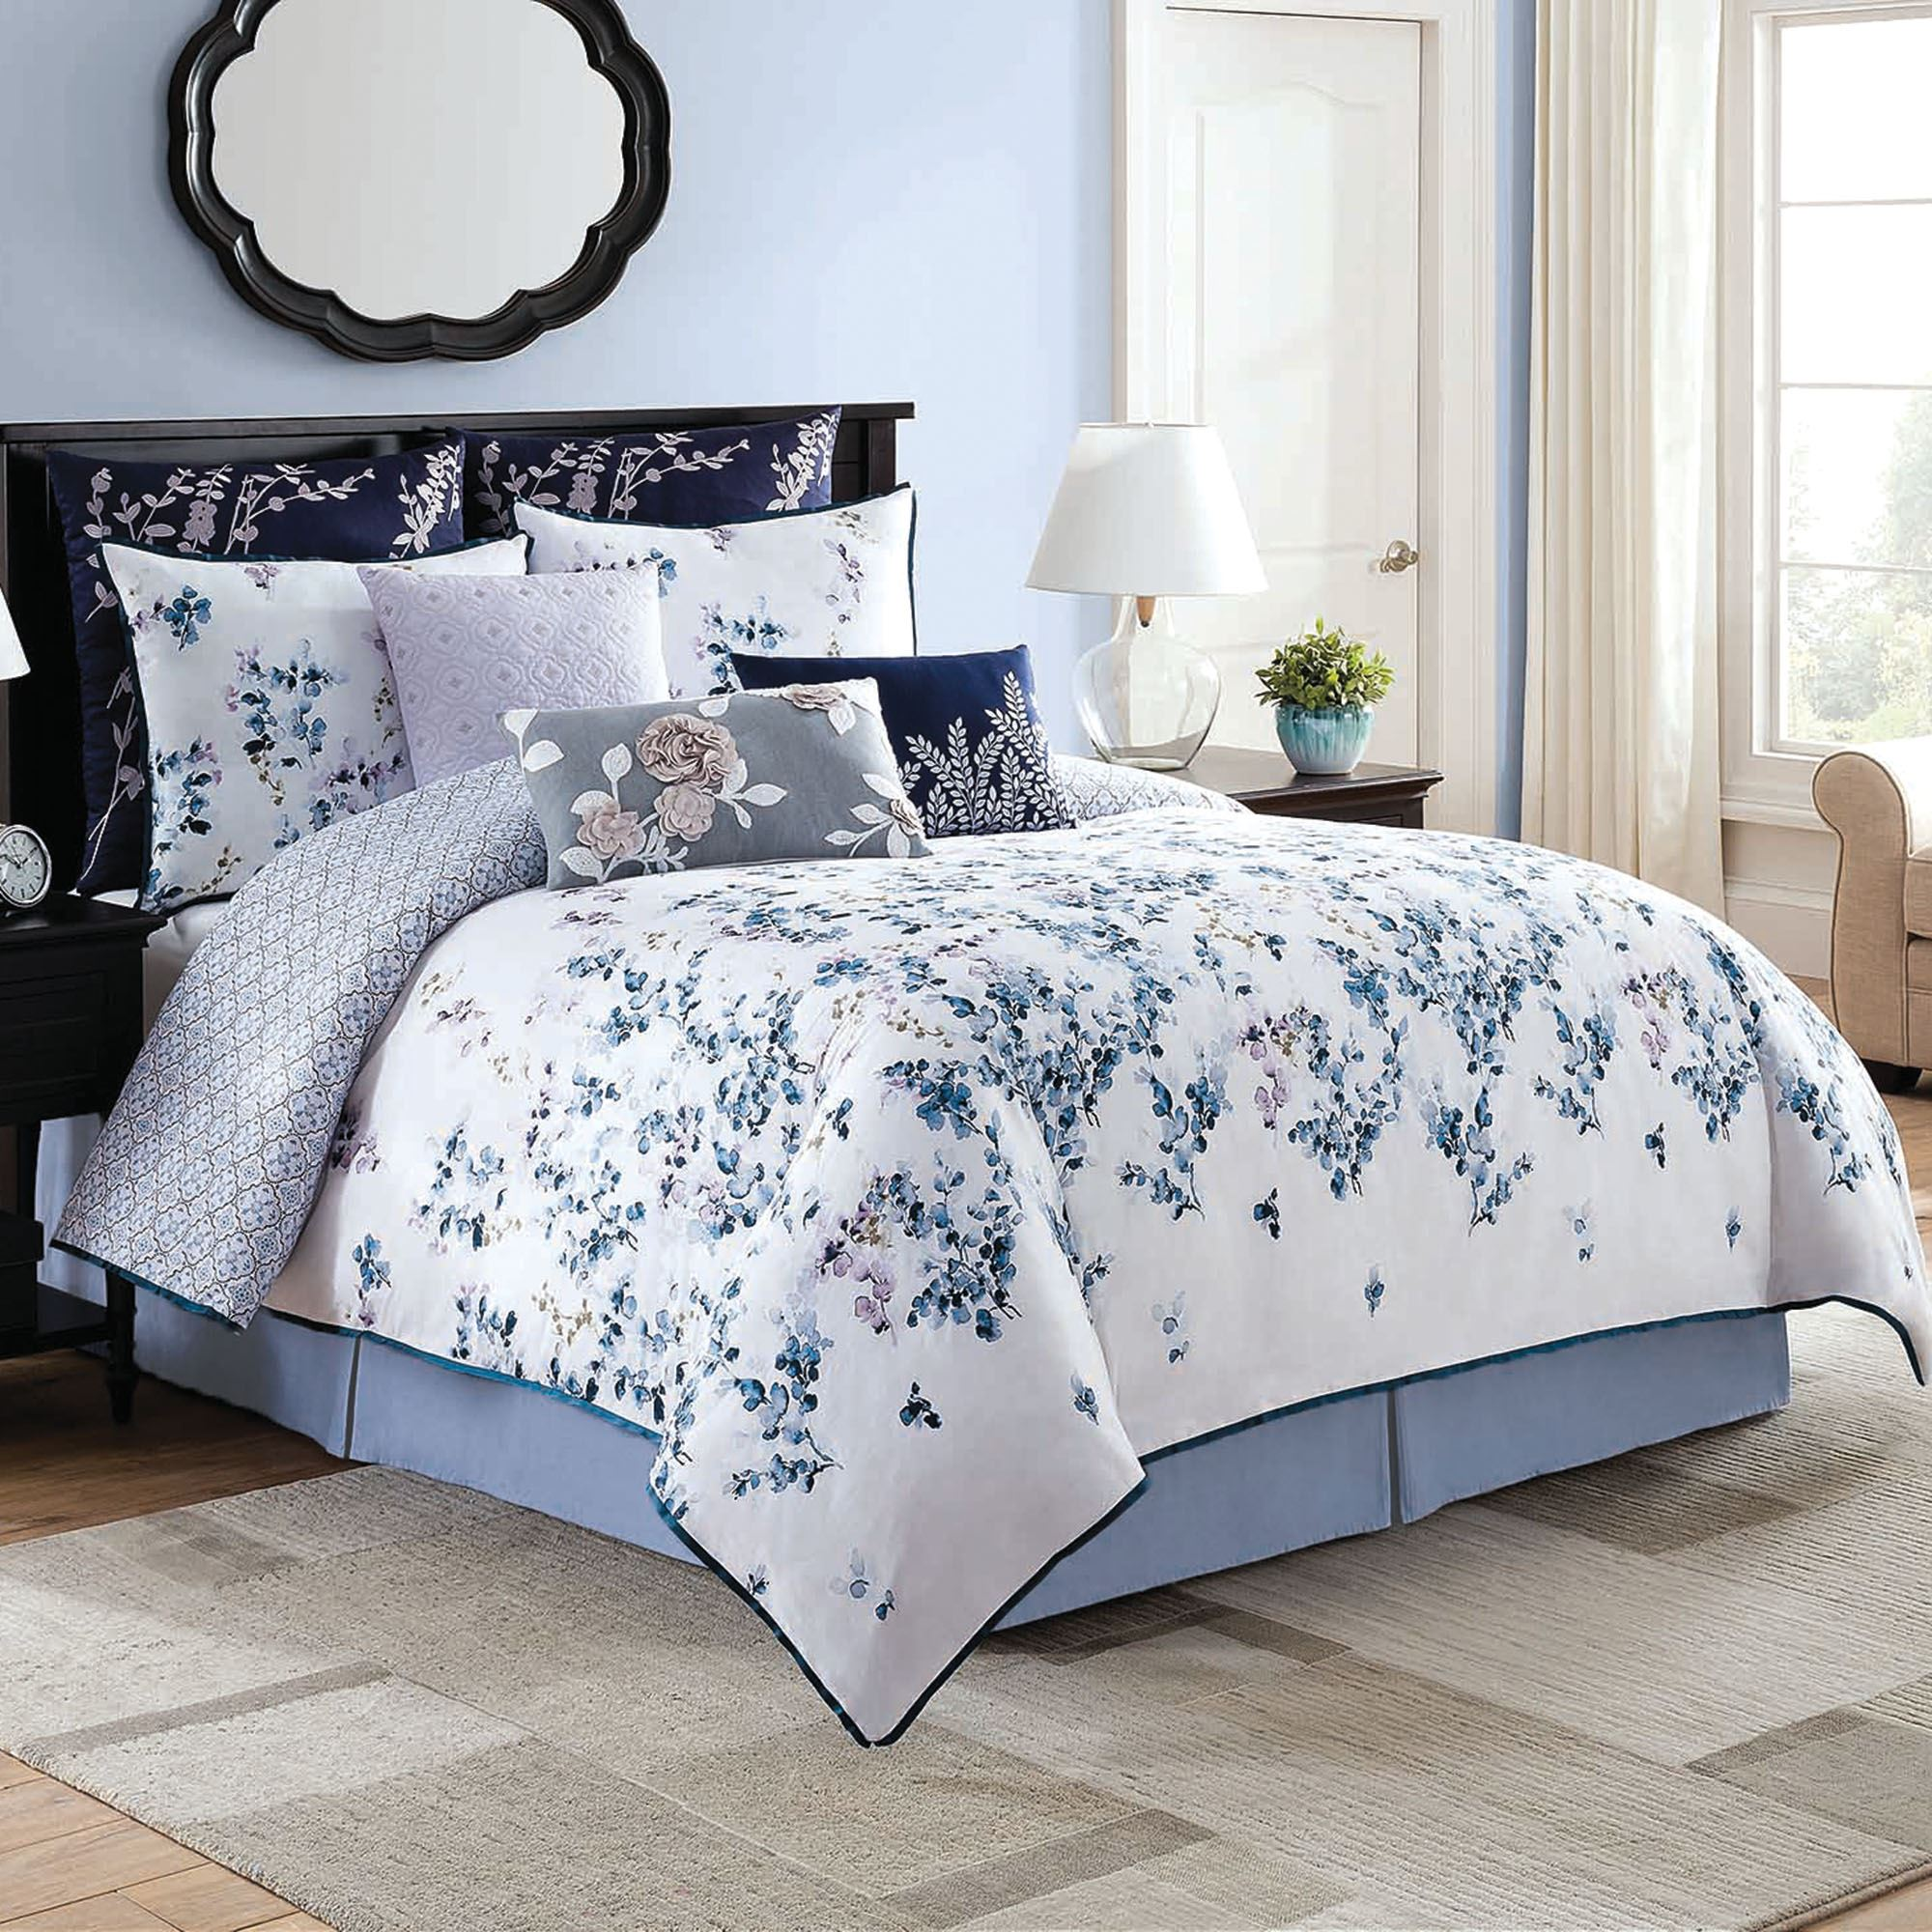 Willow Floral Comforter Bedding